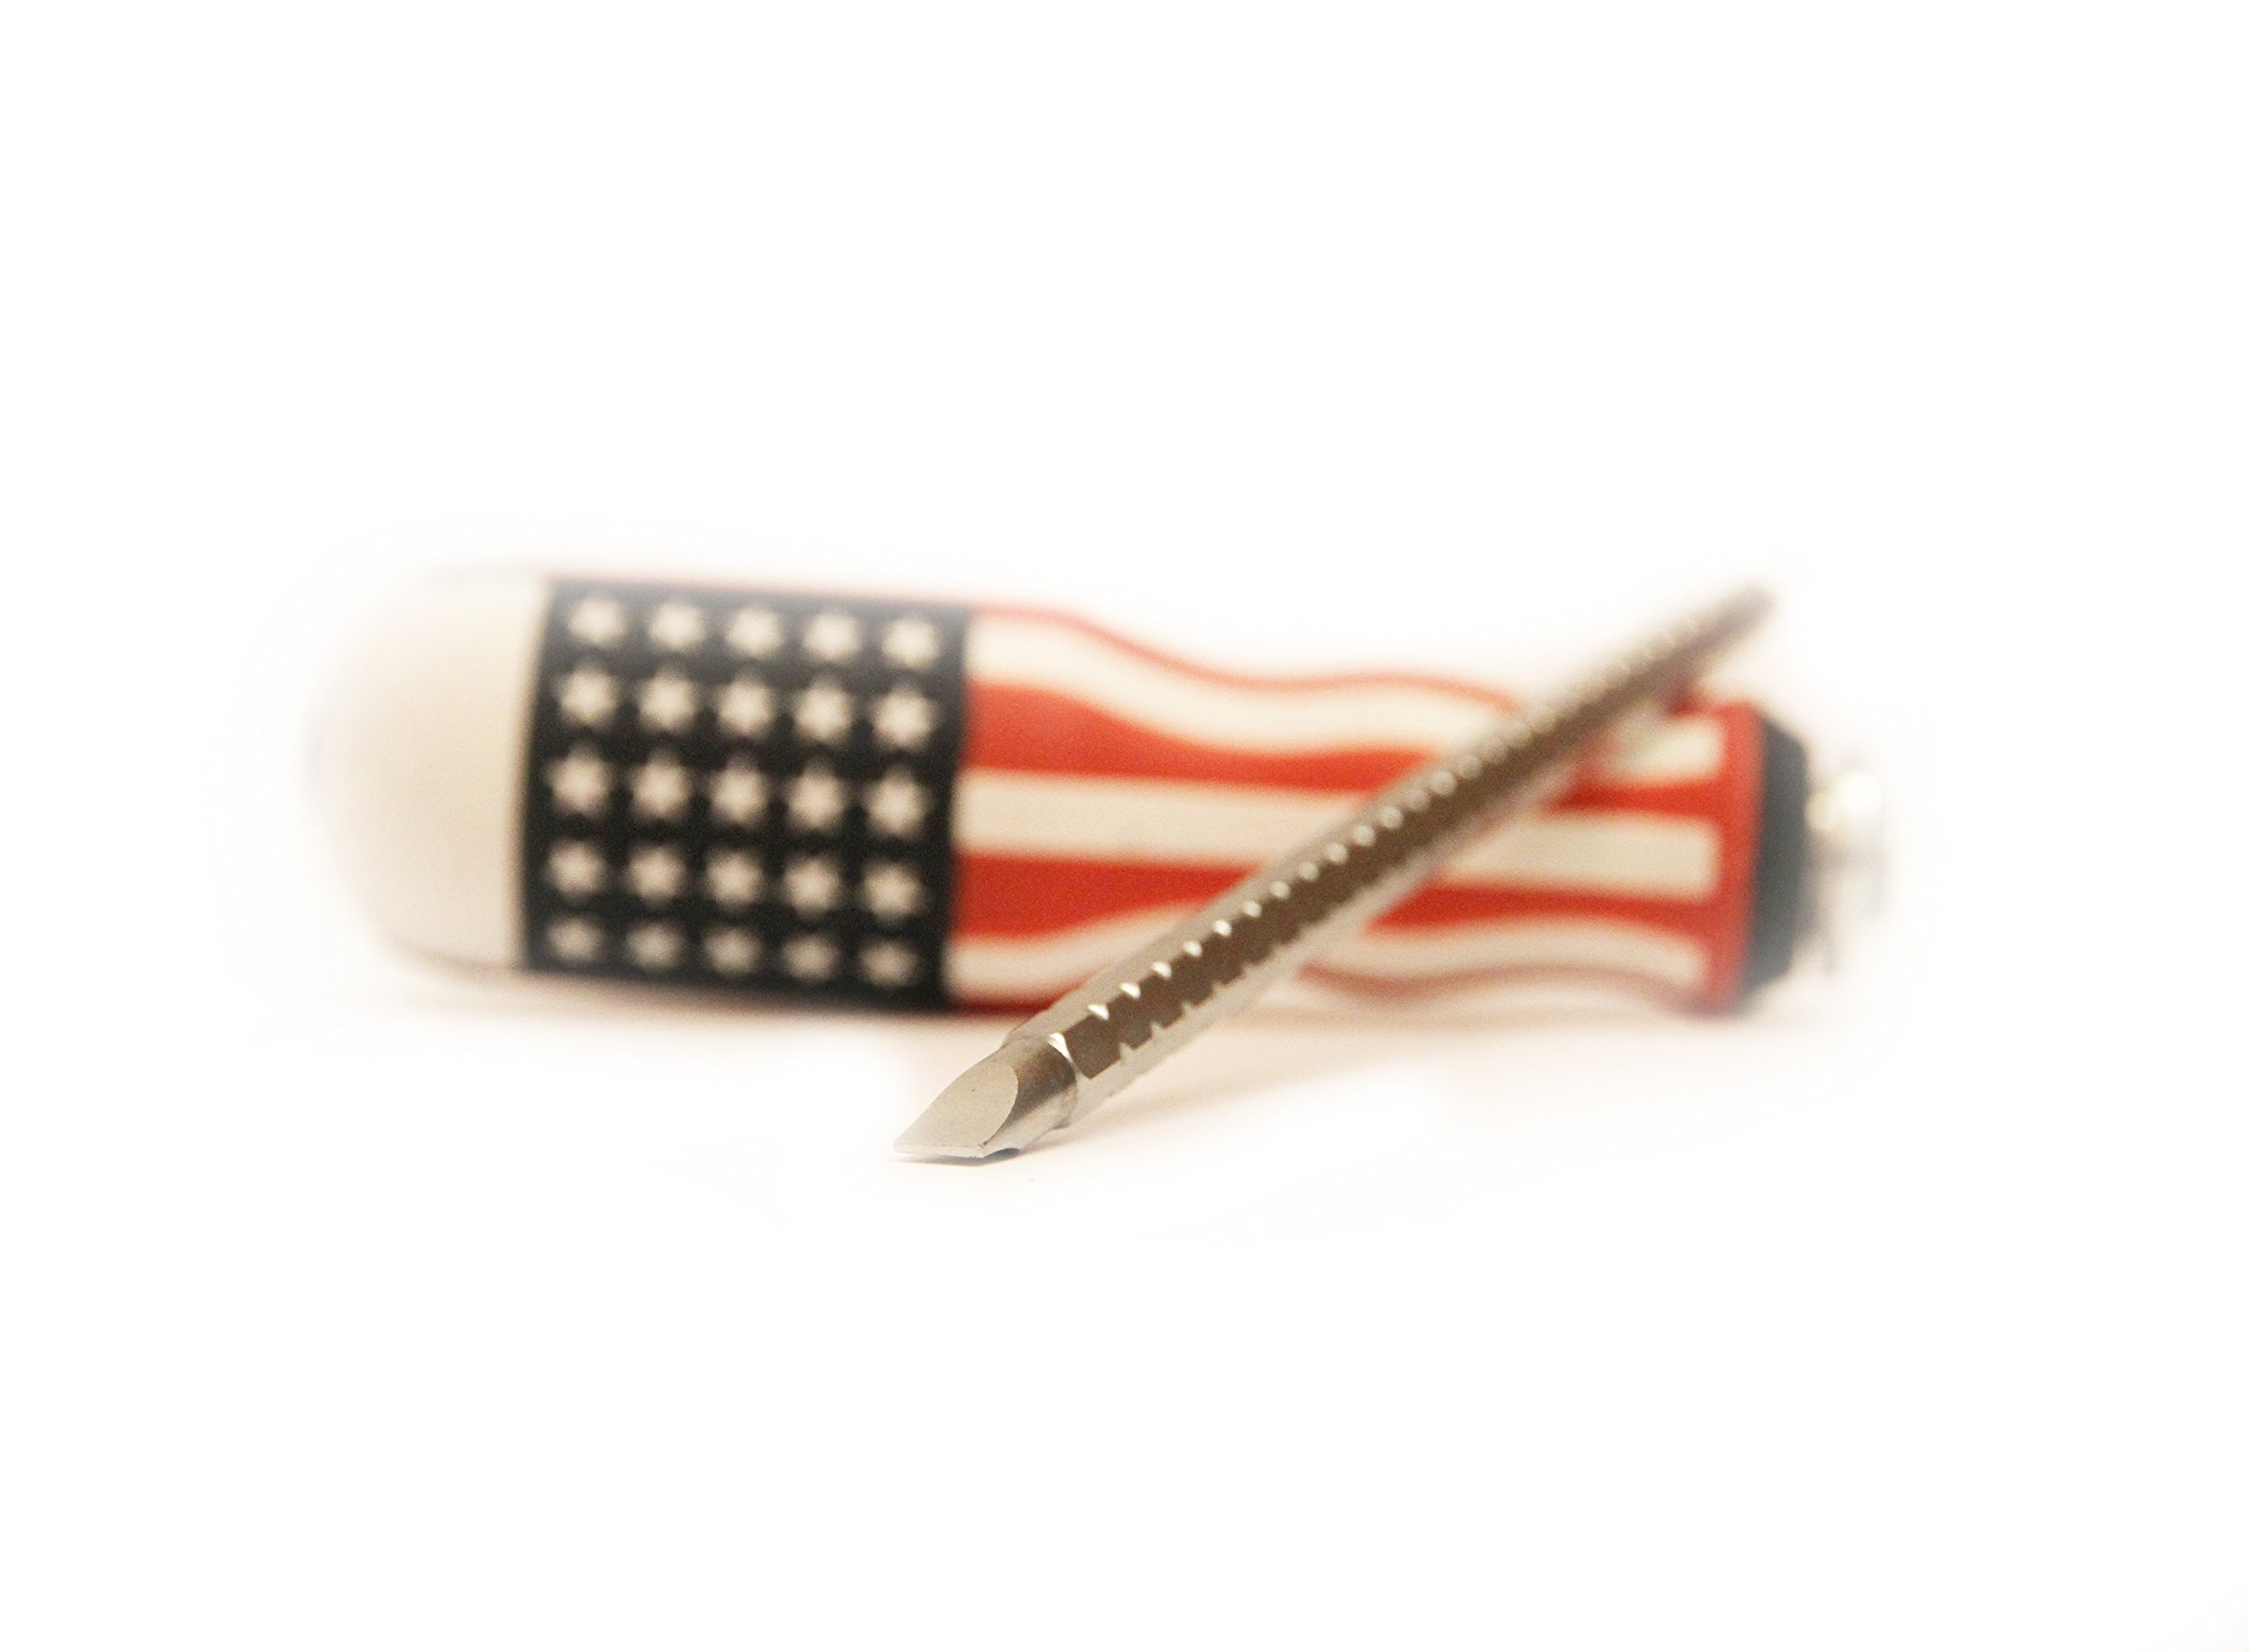 USA Screwdriver 2-in-One Combinations - Flat & Phillips Screwdriver Heads, Magnetic Tips, Heavy Duty Grip Home & Professional Use - American Flag Theme By Steel & Wood US Tools by Steel & Wood US Tools (Image #4)